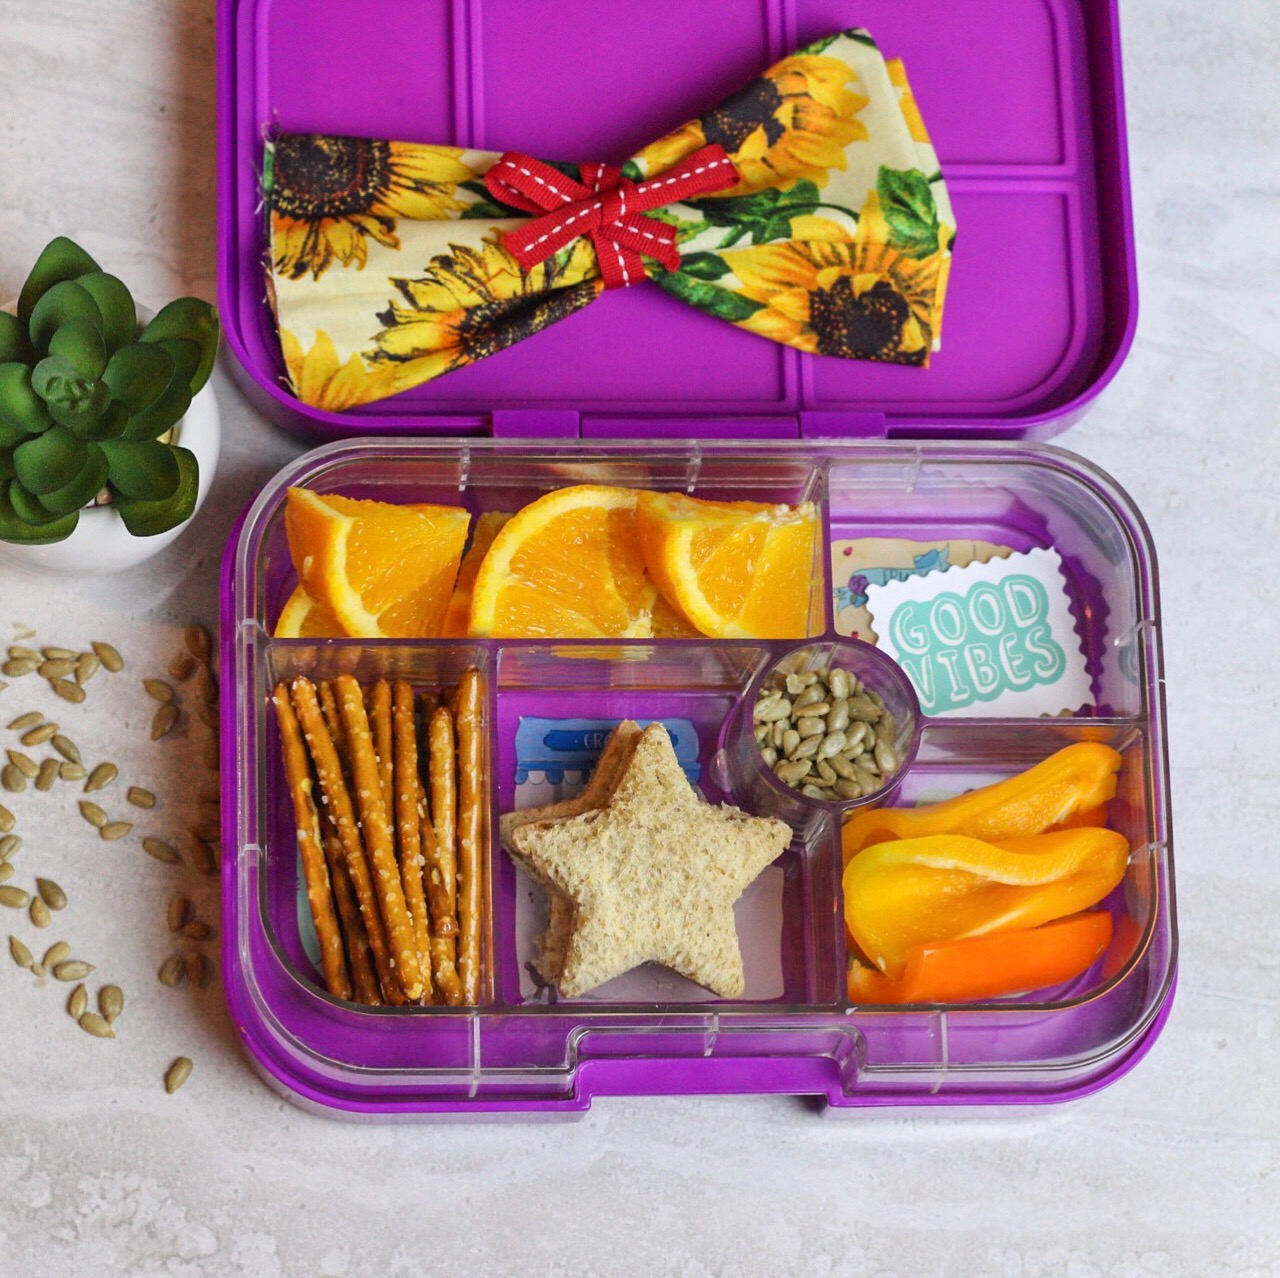 sweet peppers go a long way in our household! - PB and jam sandwiches, pretzel sticks, sweet peppers, sunflower seeds, and oranges!